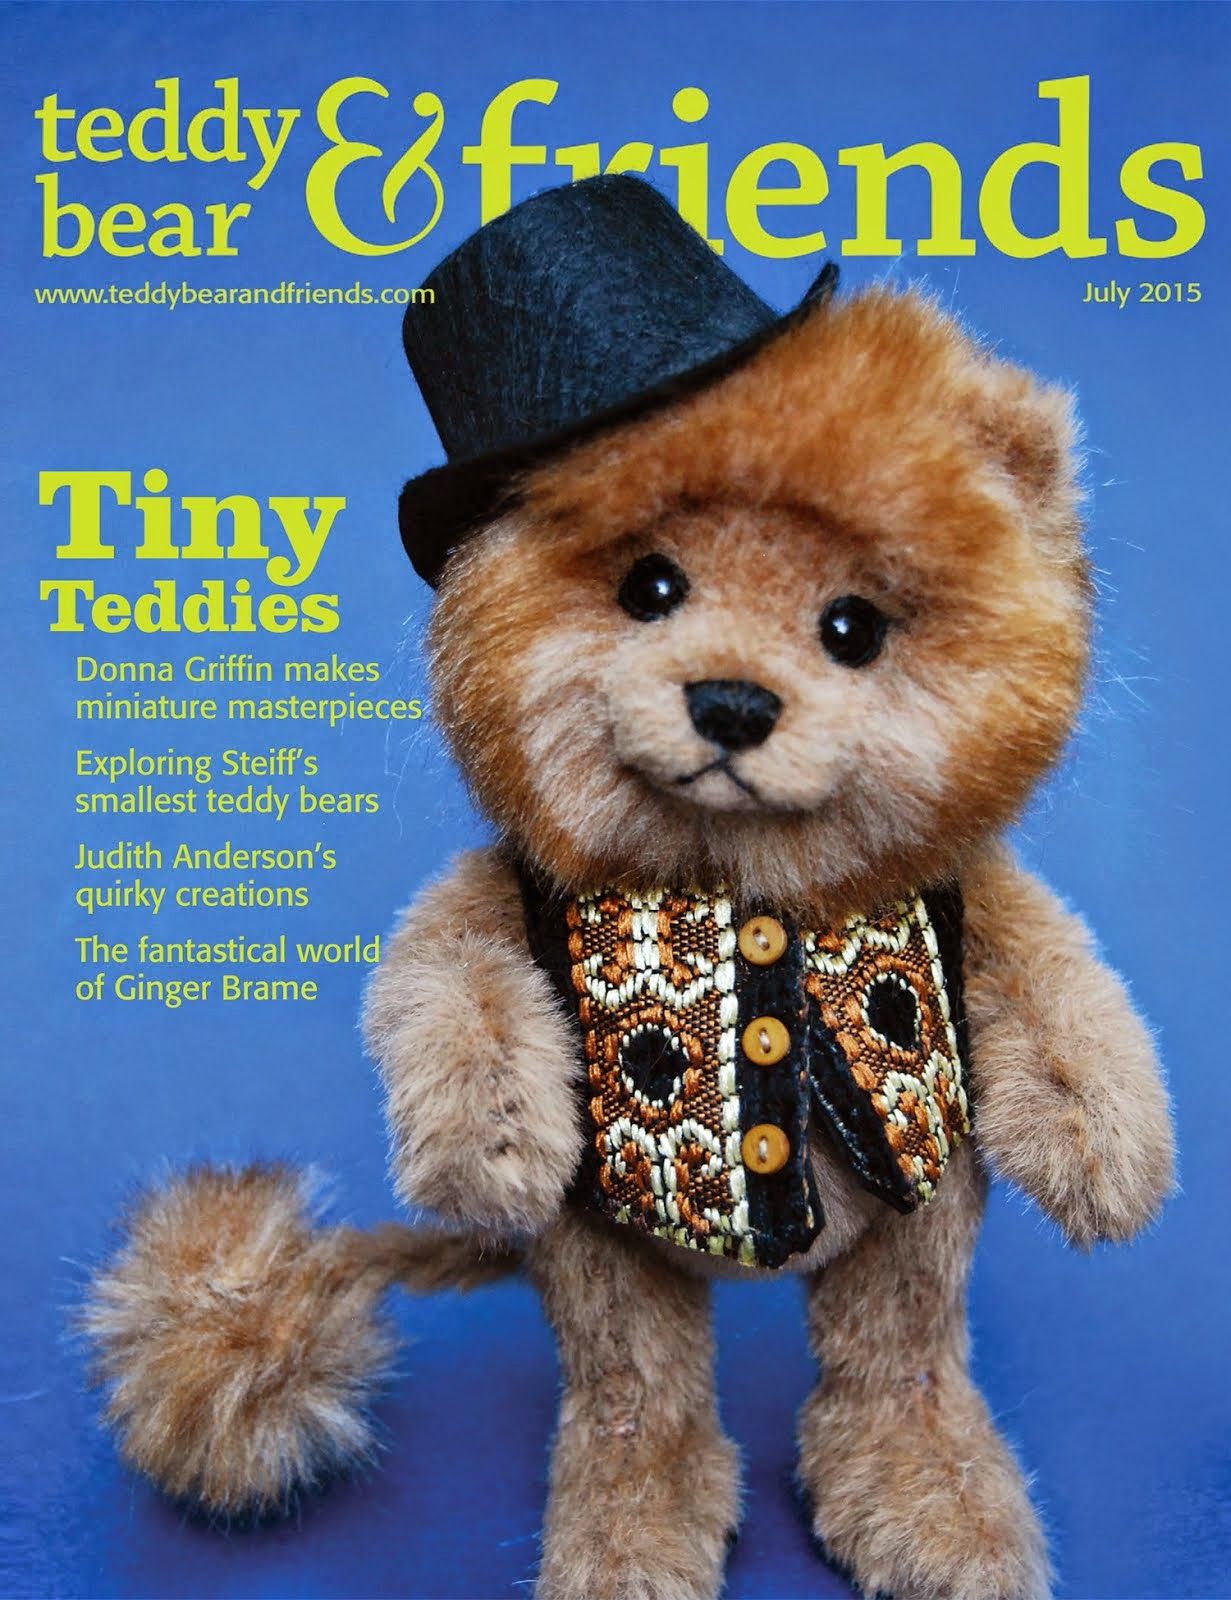 Thank you Teddy Bear and Friends!